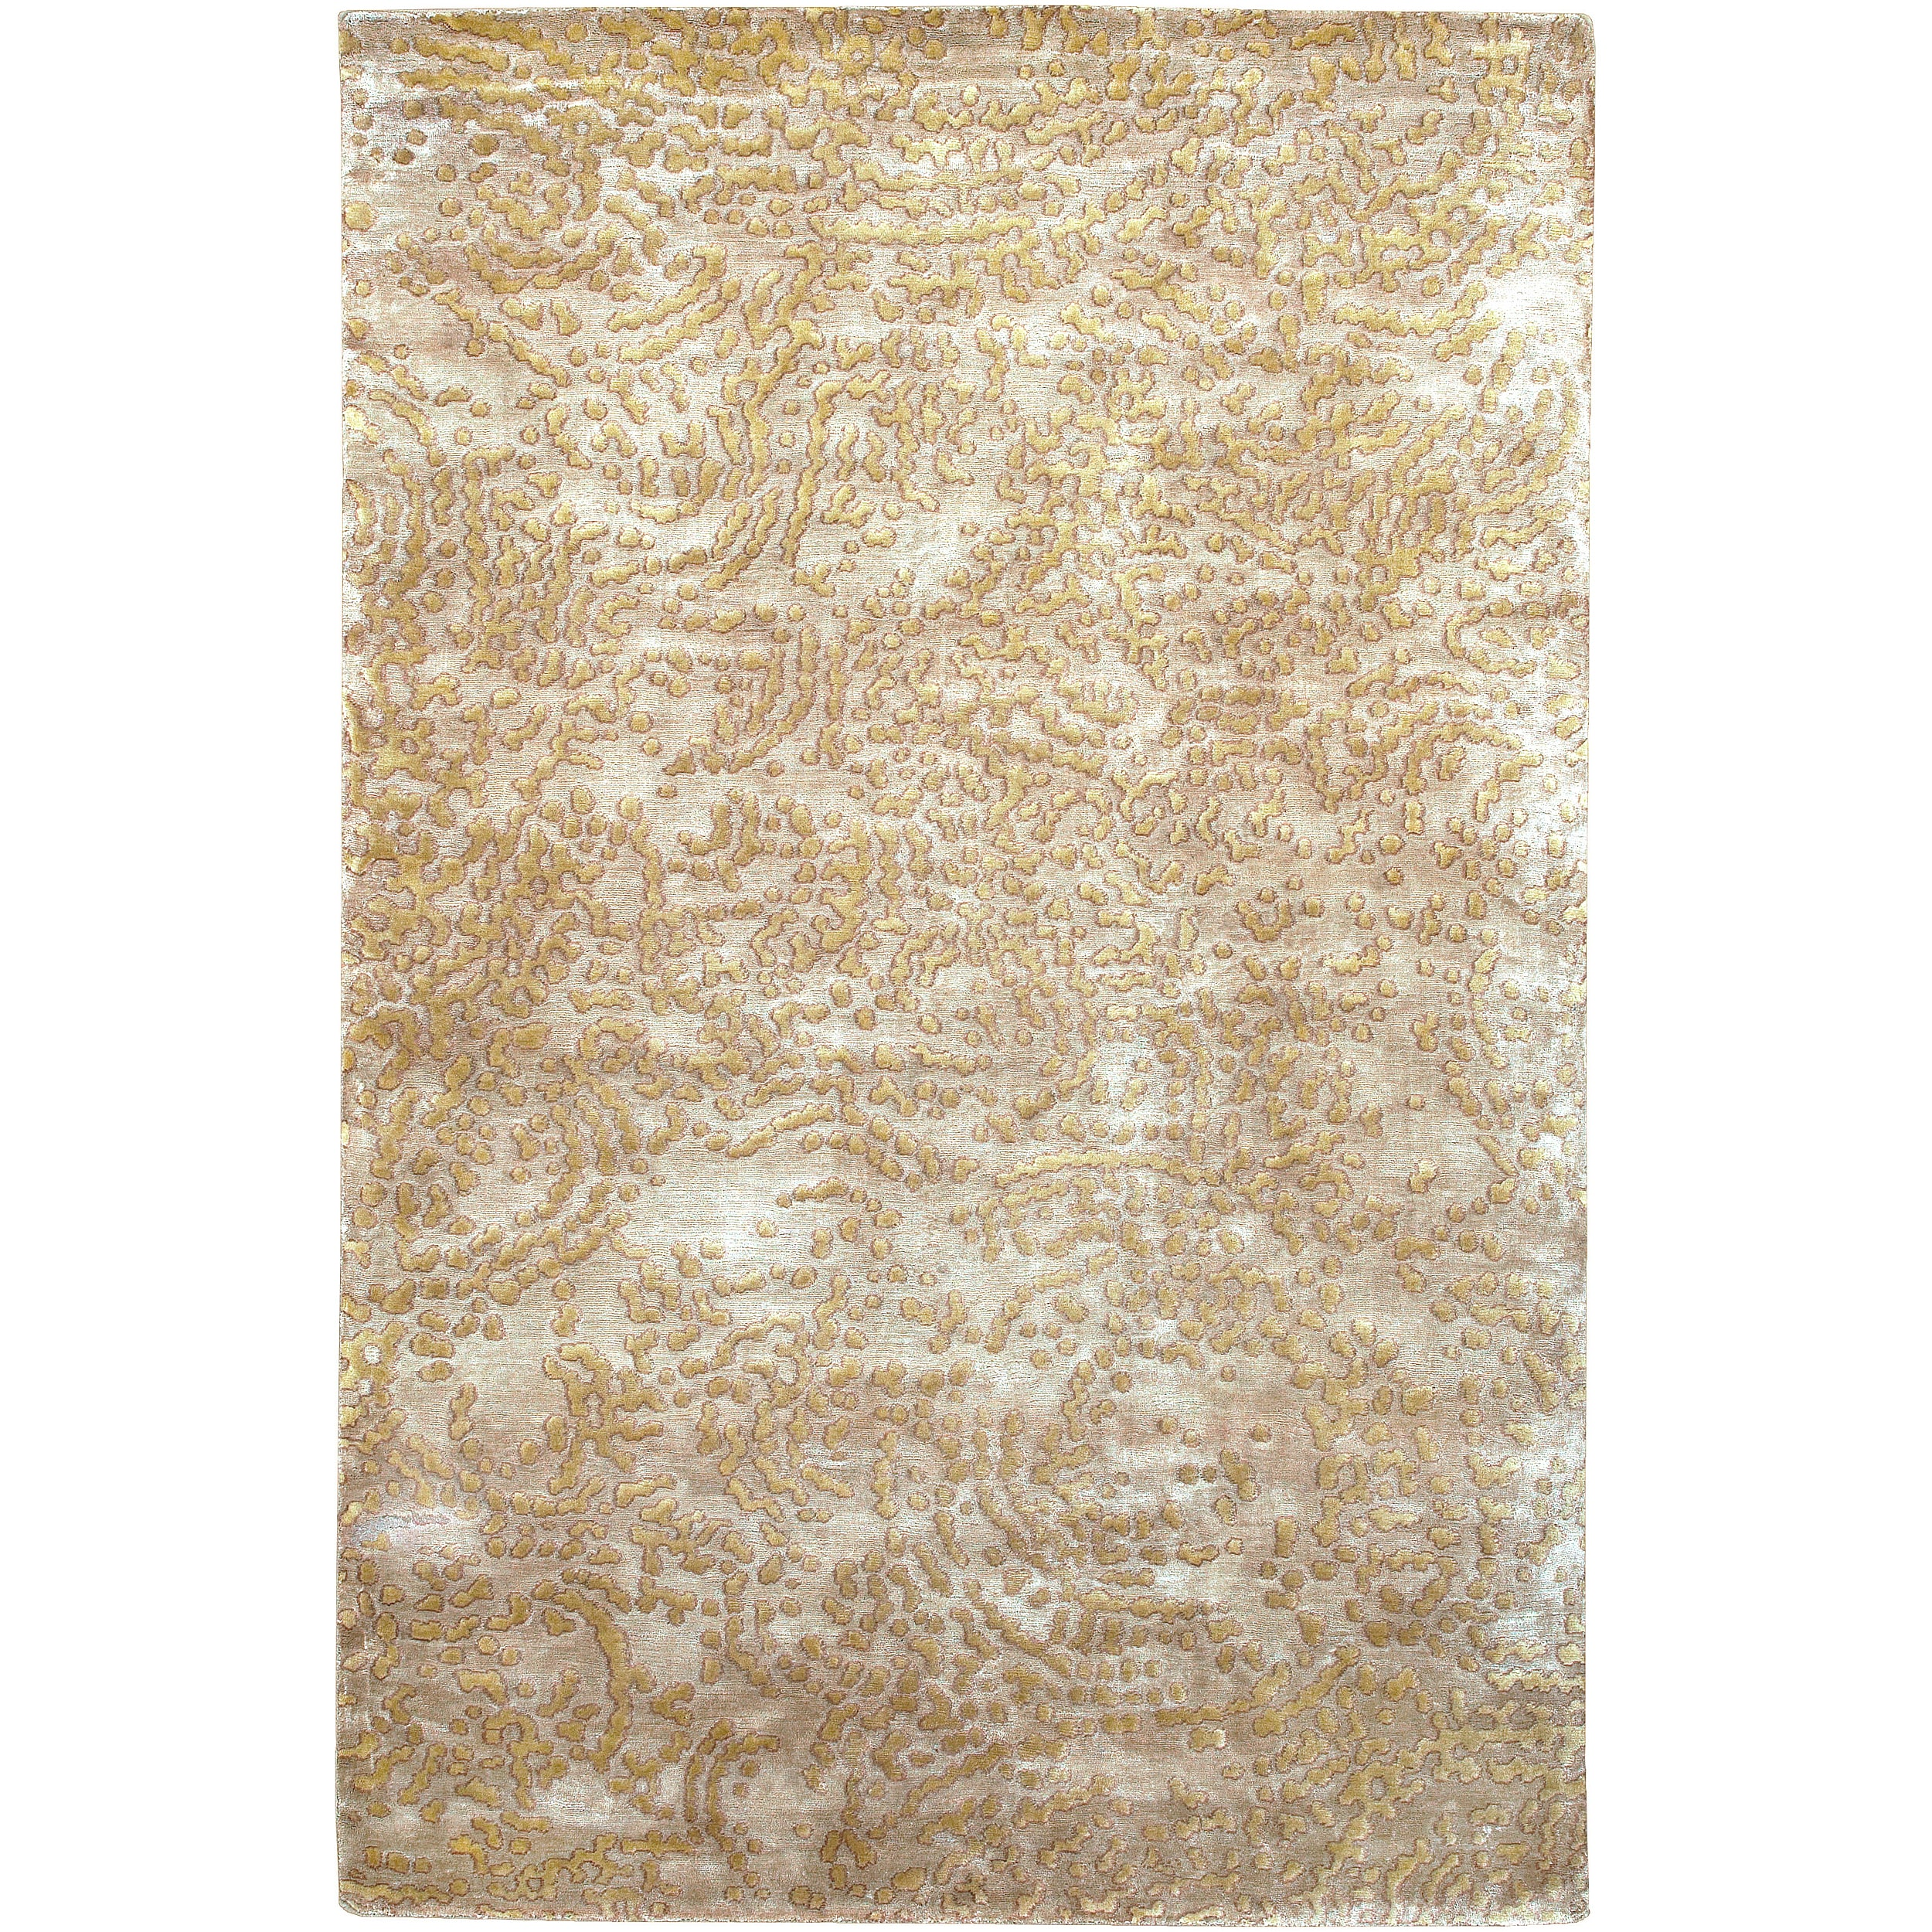 Hand-knotted Conchoo Tan Abstract Design Wool Rug (4' x 6')